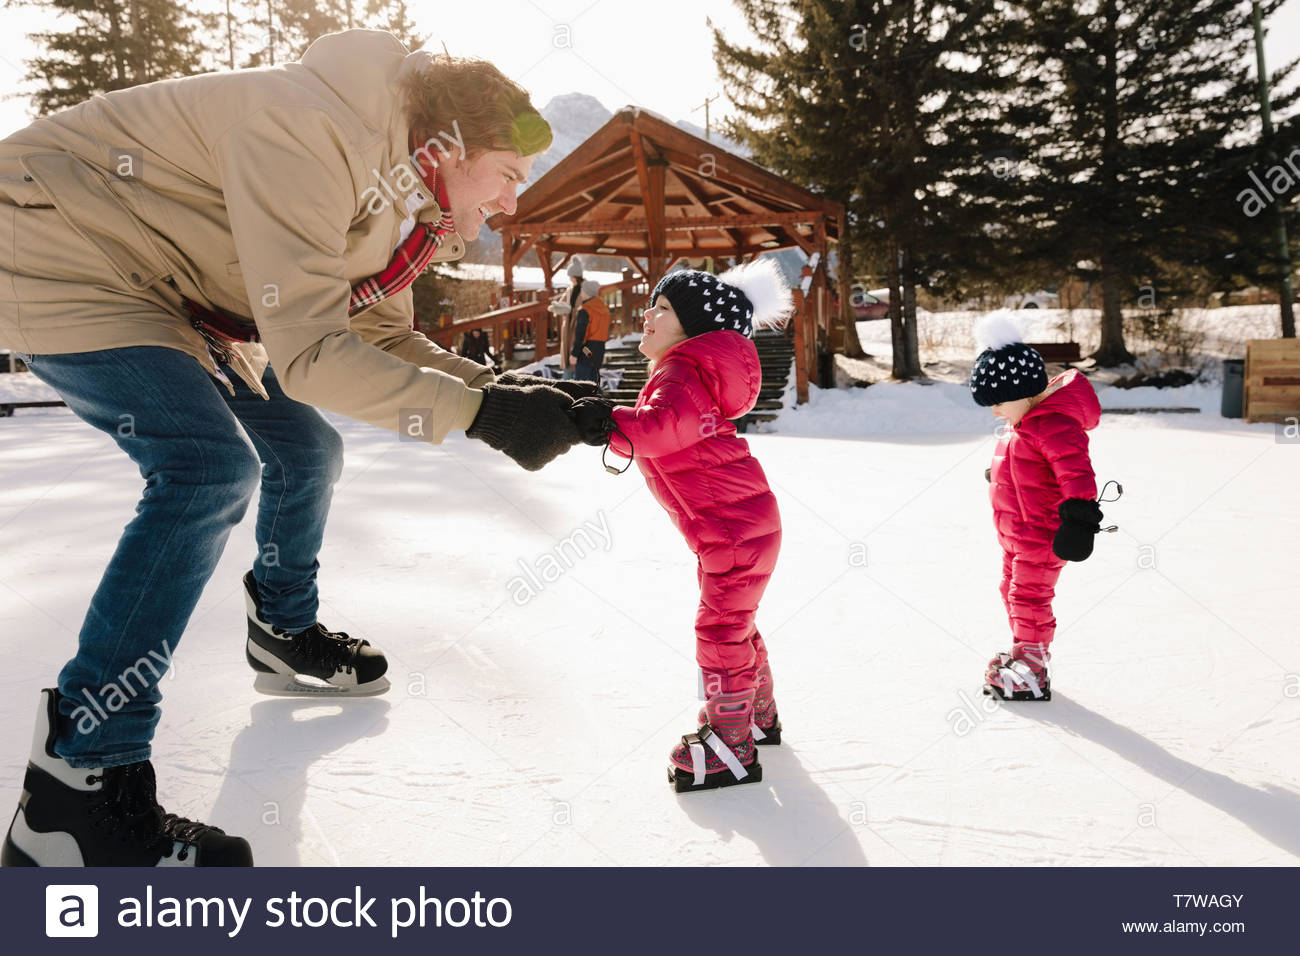 Father and toddler daughter ice skating on frozen pond - Stock Image